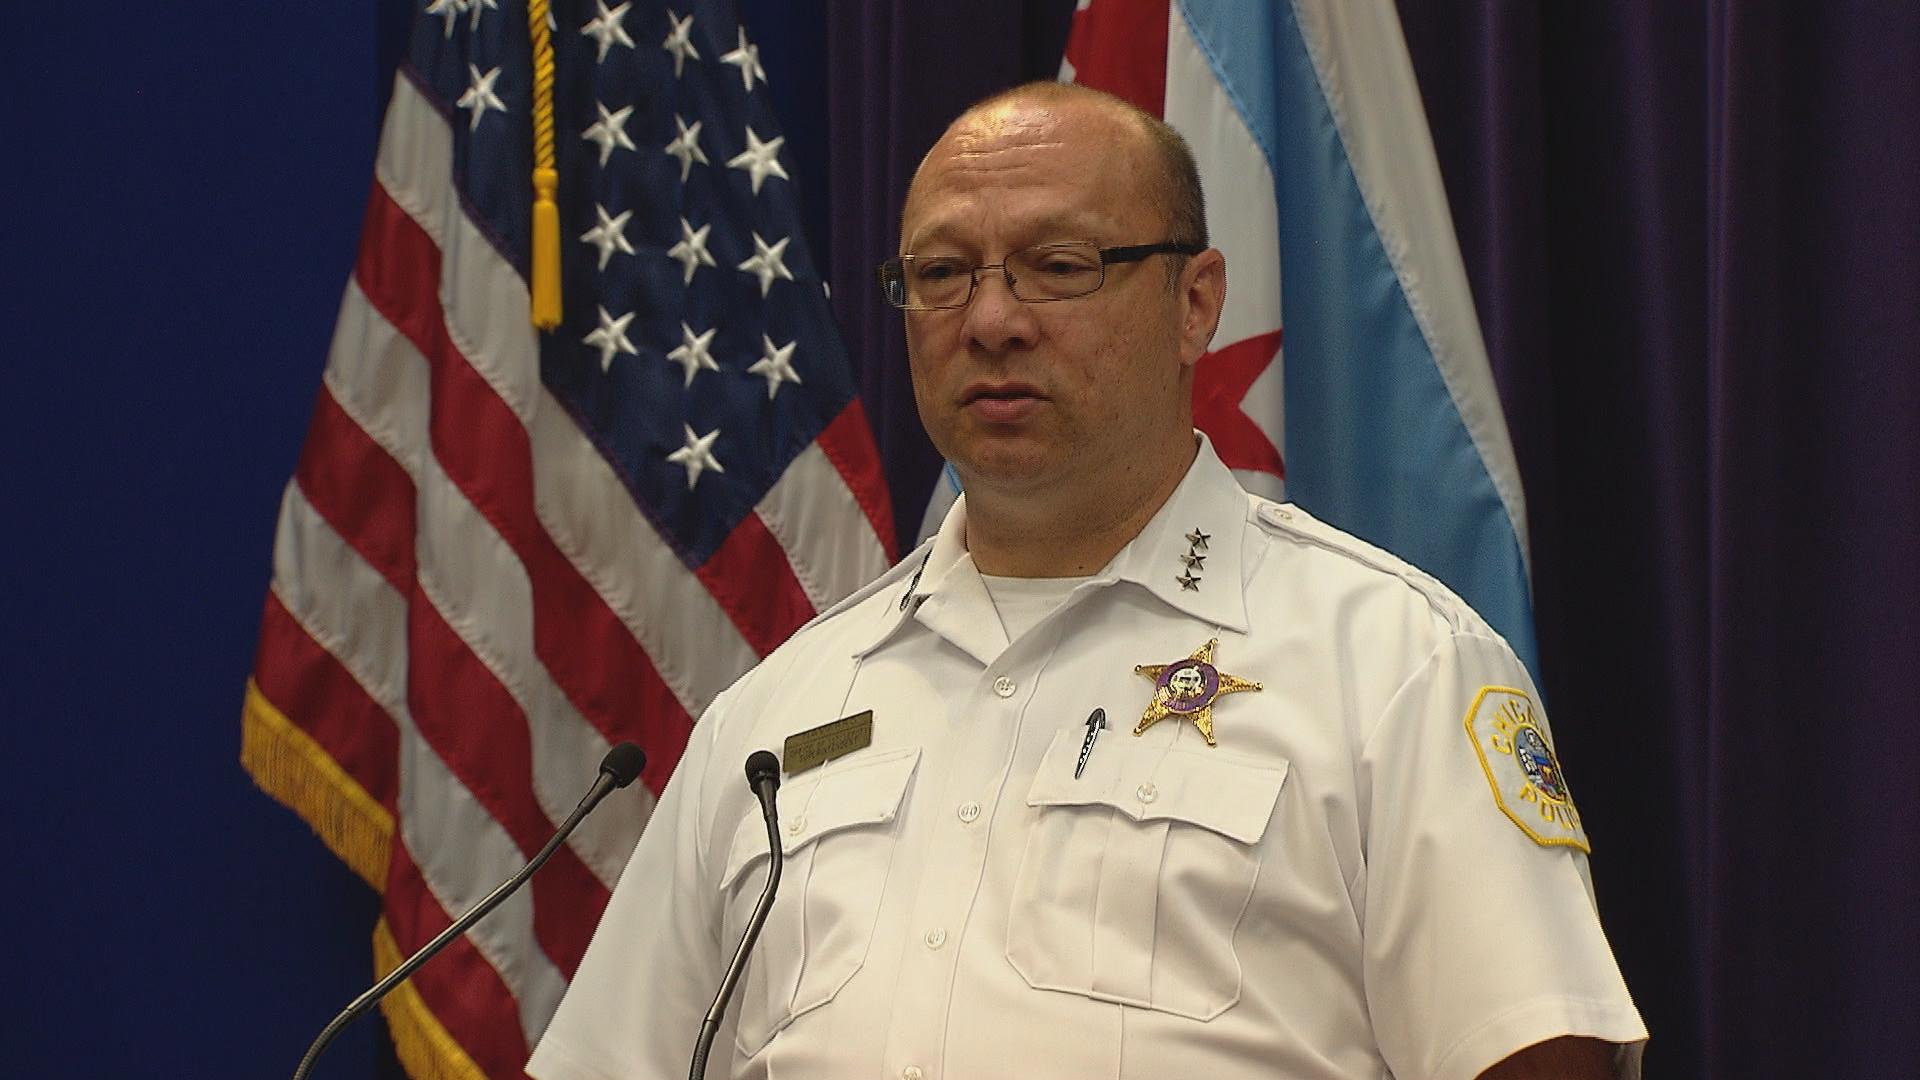 Chicago Police First Deputy Superintendent Kevin Navarro